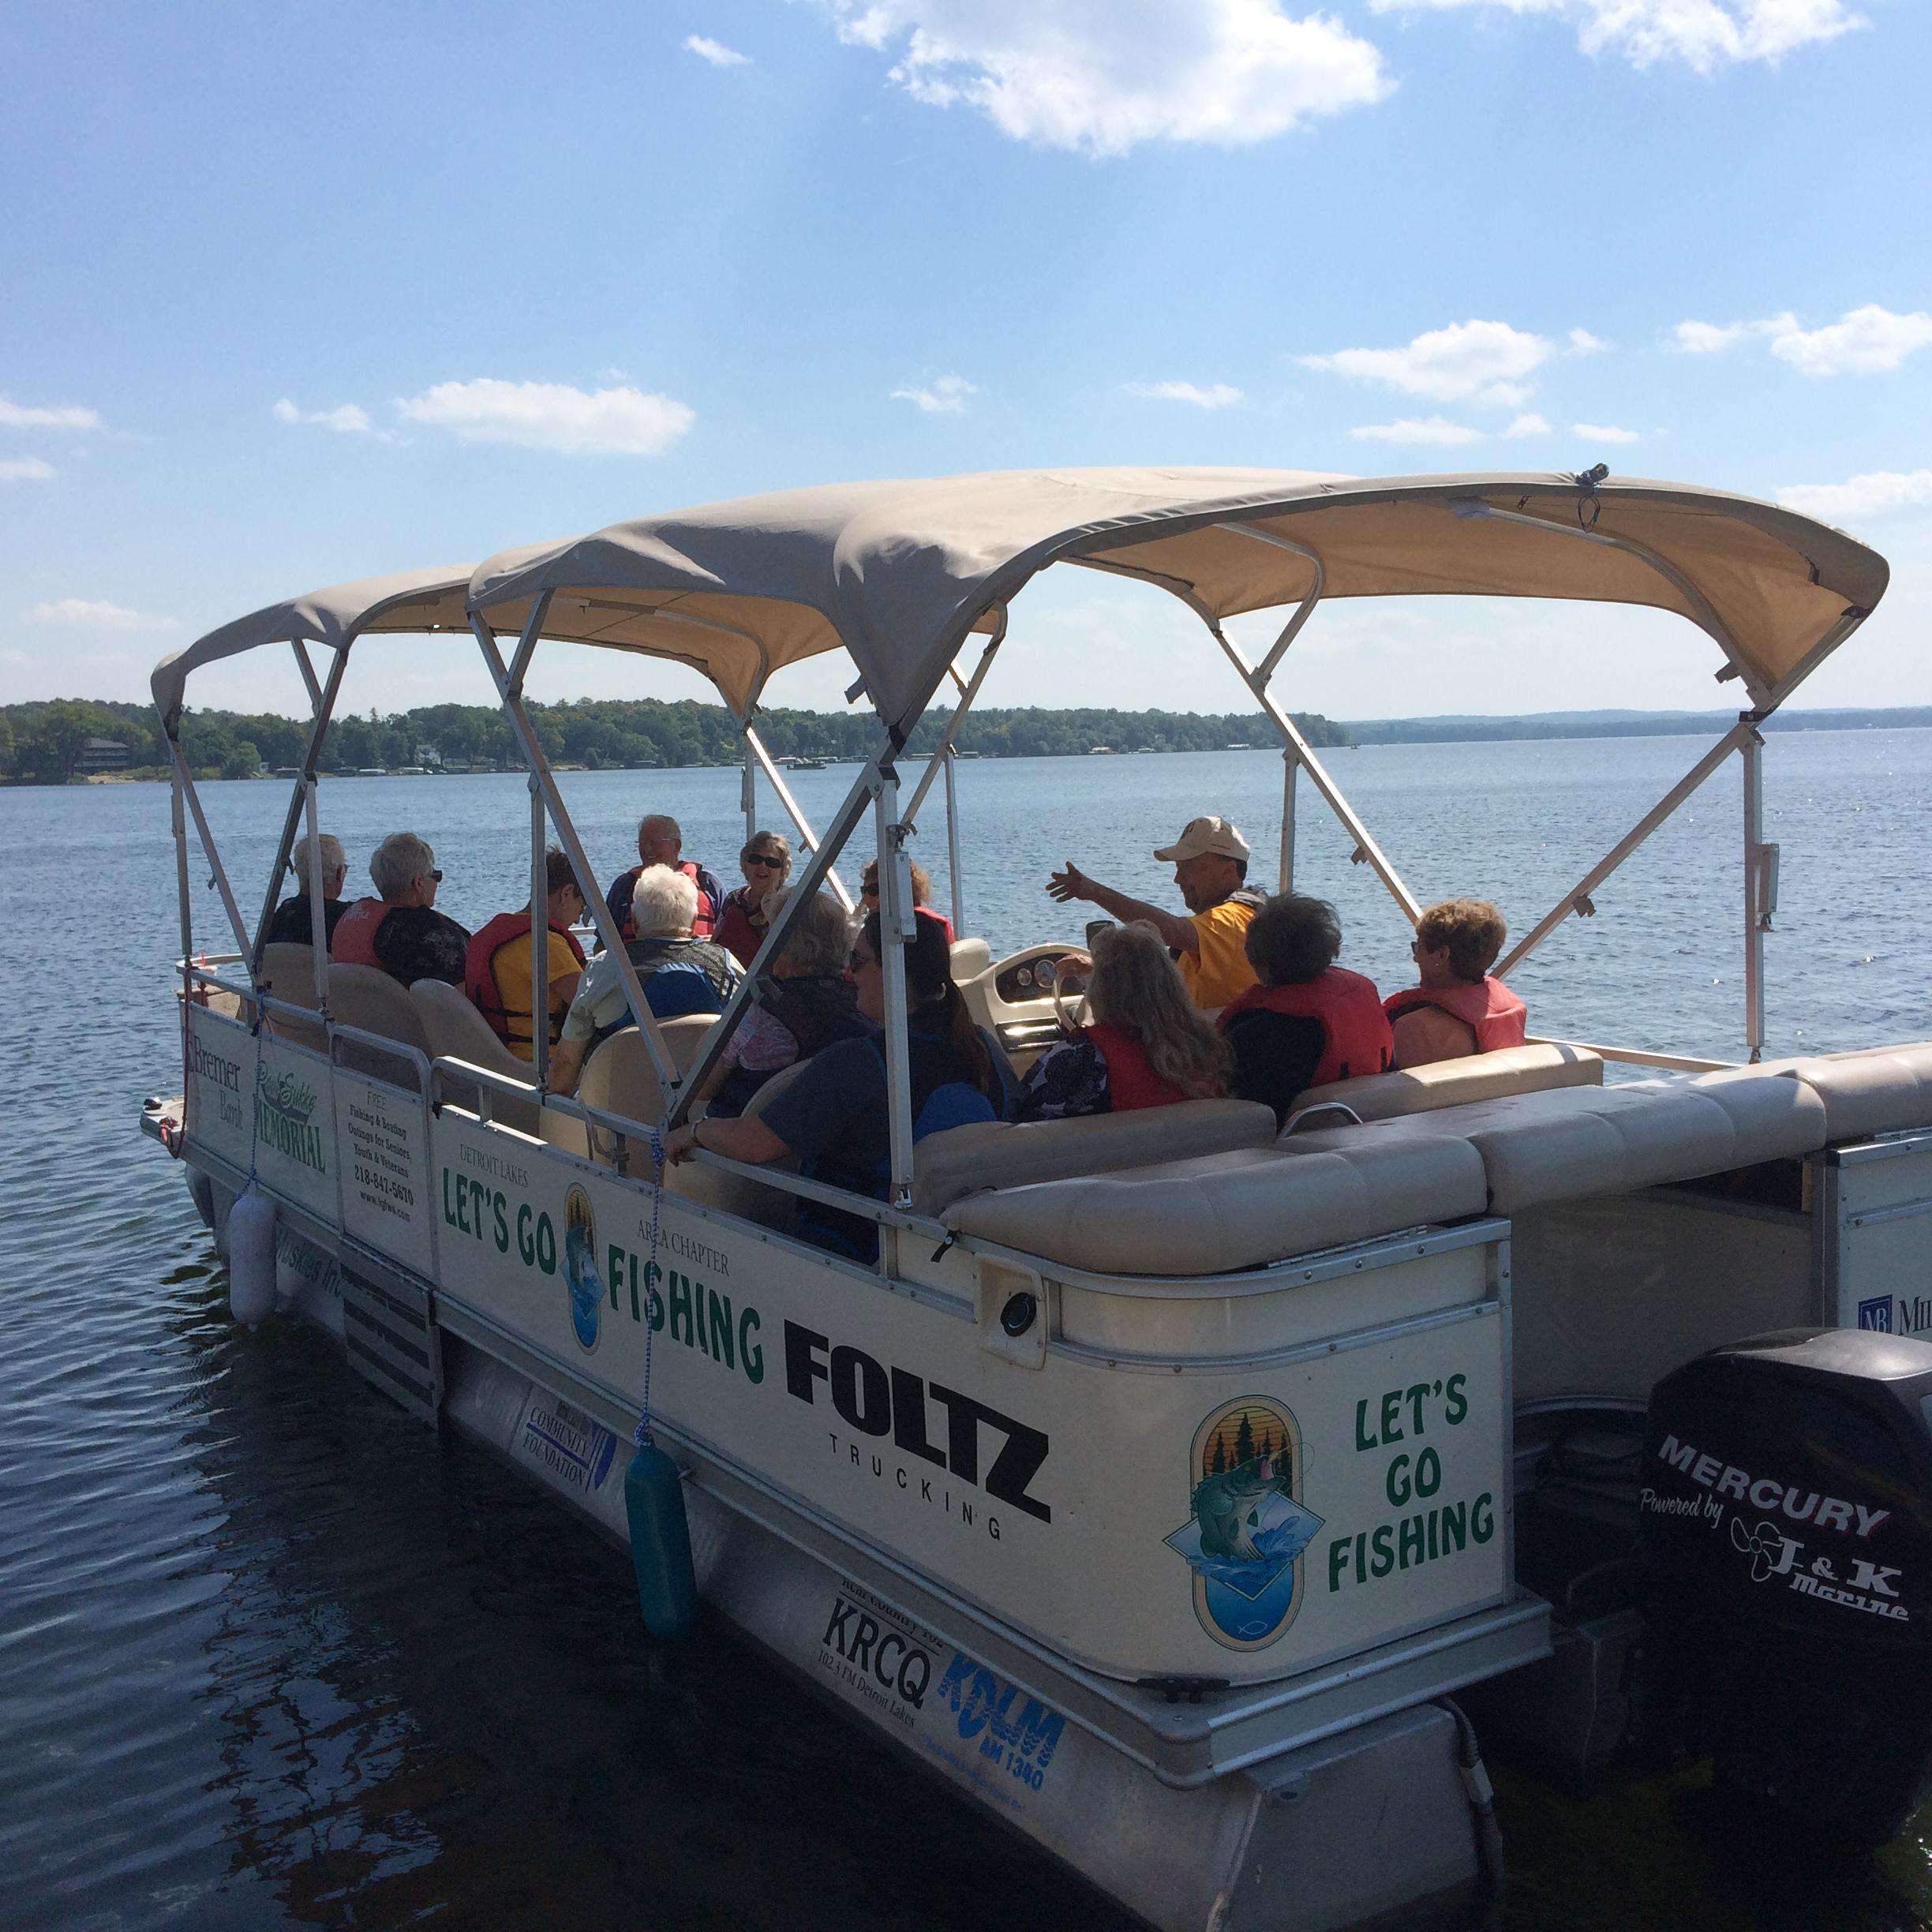 Some trips scheduled with the Detroit Lakes chapter of Let's Go Fishing are more of the scenic variety, with the pontoon captain pointing out some points of interest along the way. (Submitted photo)